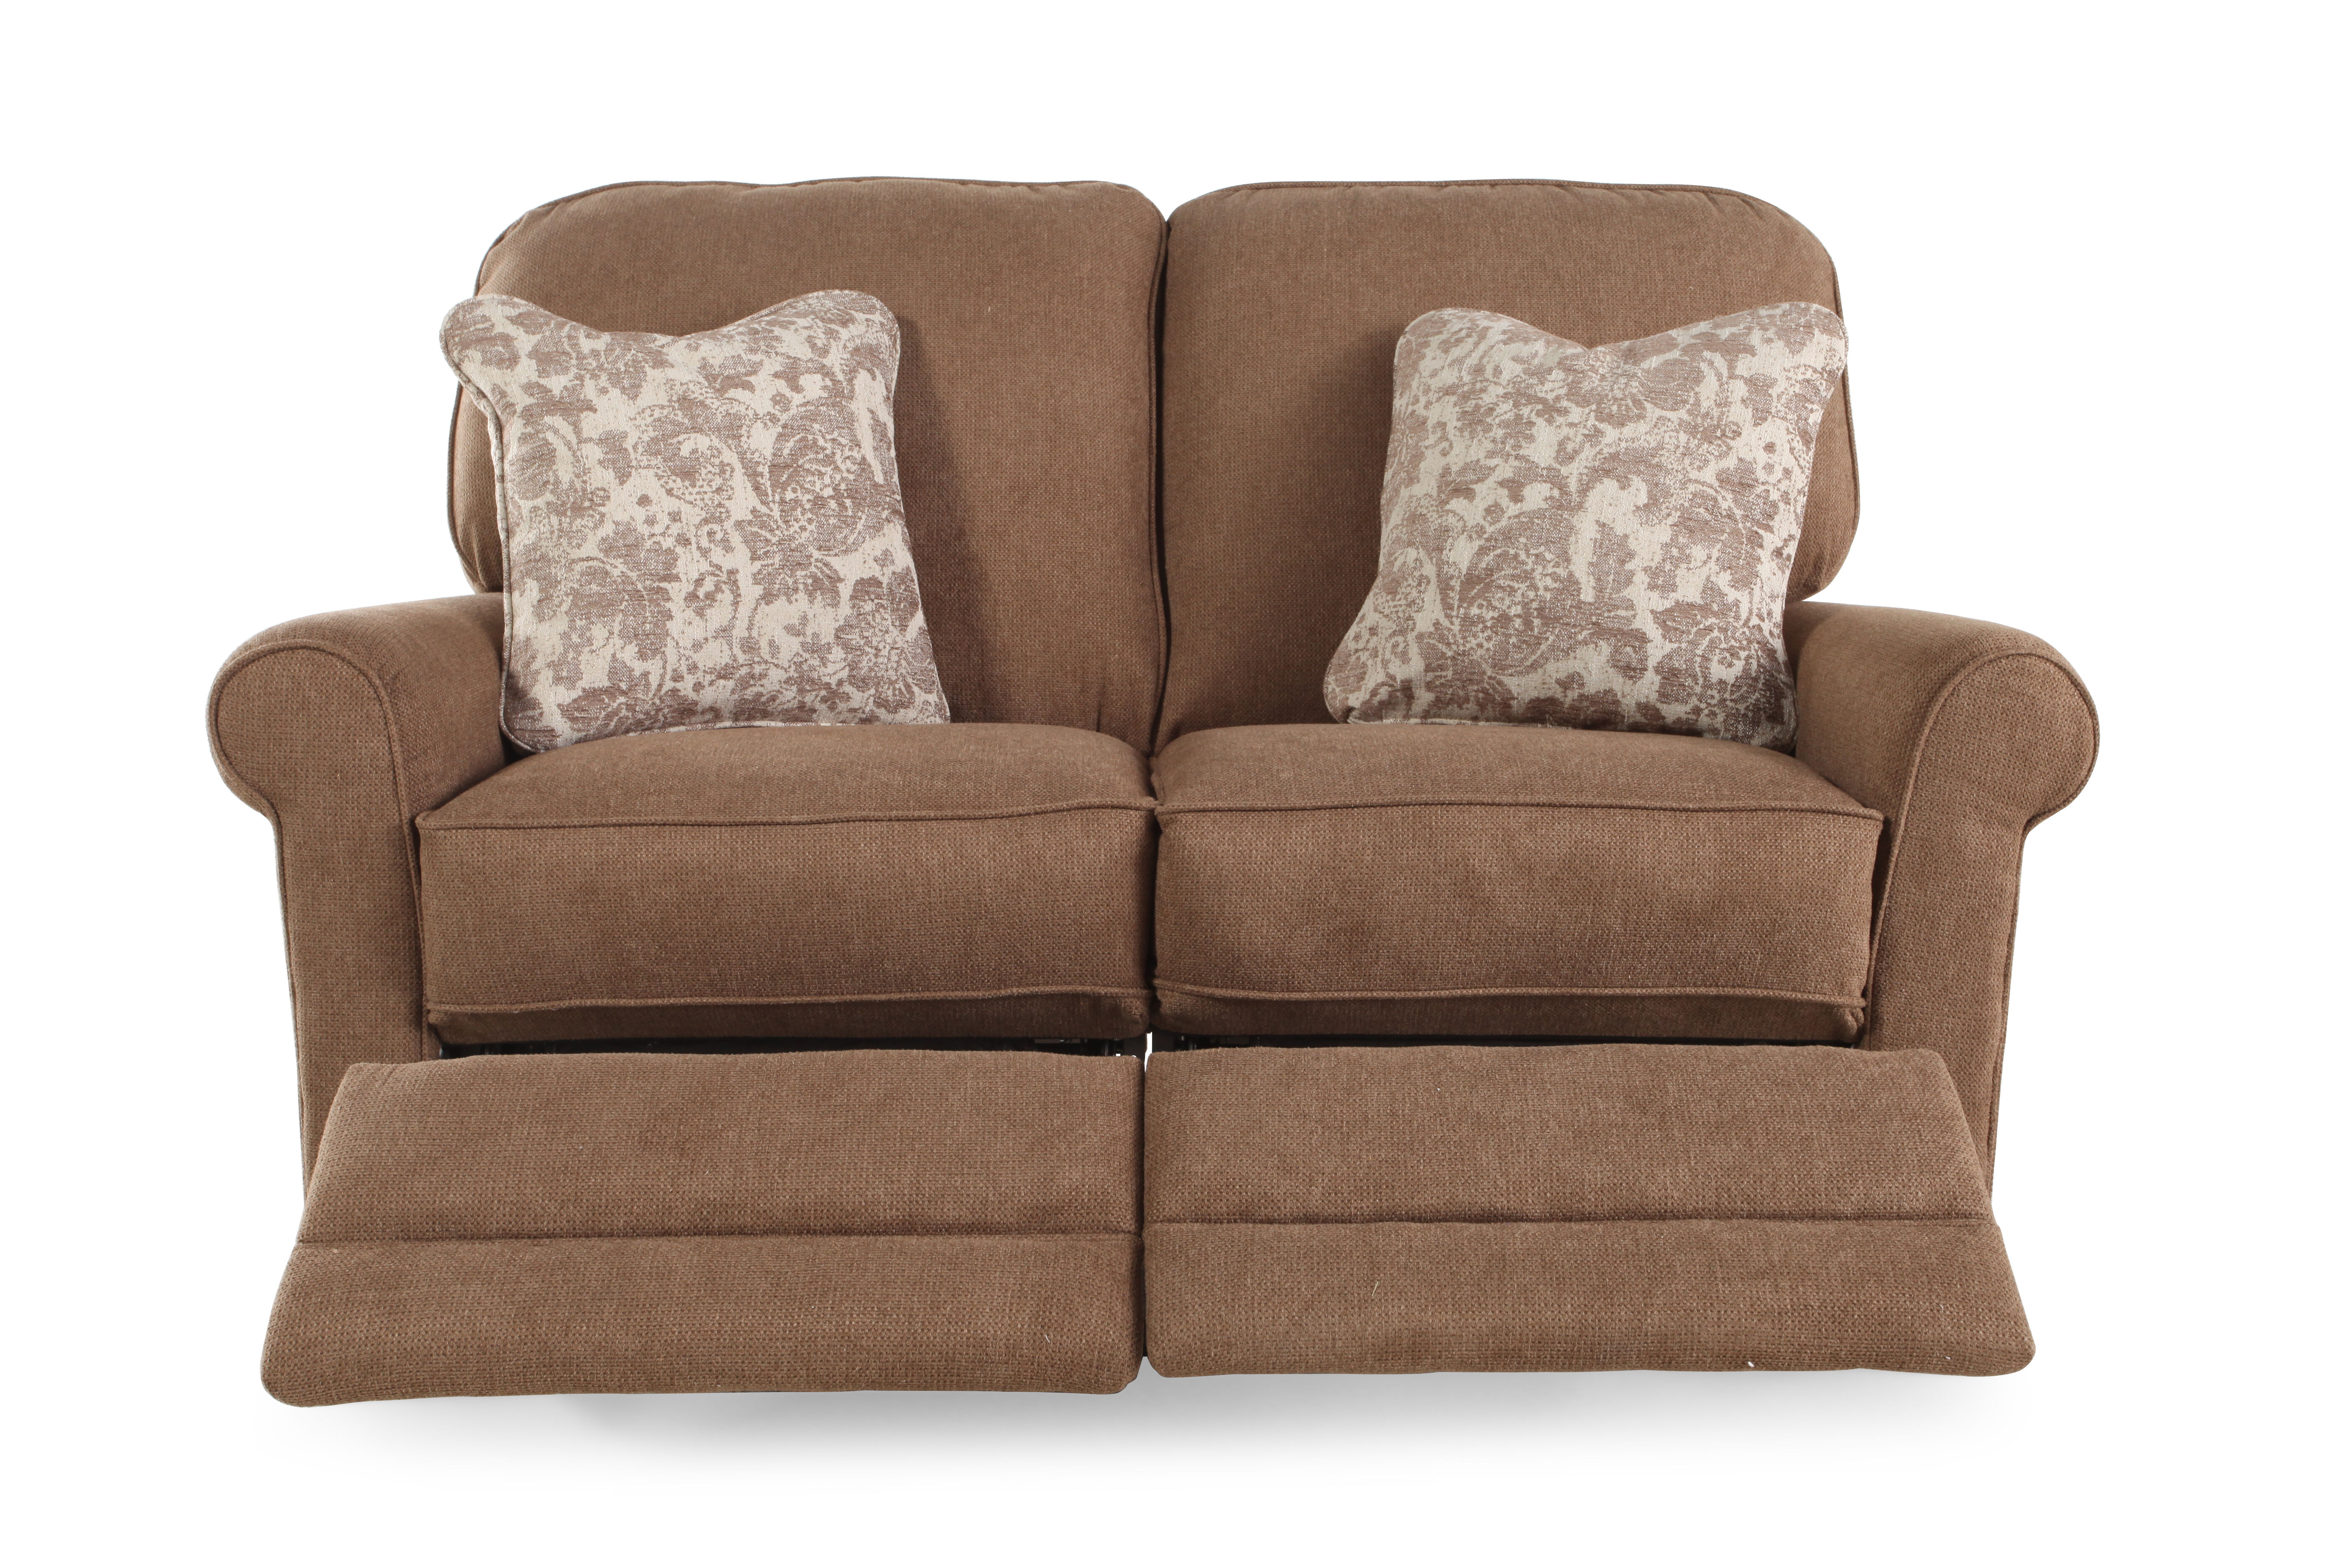 La-Z-Boy Addison Mushroom Reclining Loveseat  sc 1 st  Mathis Brothers & La-Z-Boy Addison Mushroom Reclining Loveseat | Mathis Brothers ... islam-shia.org